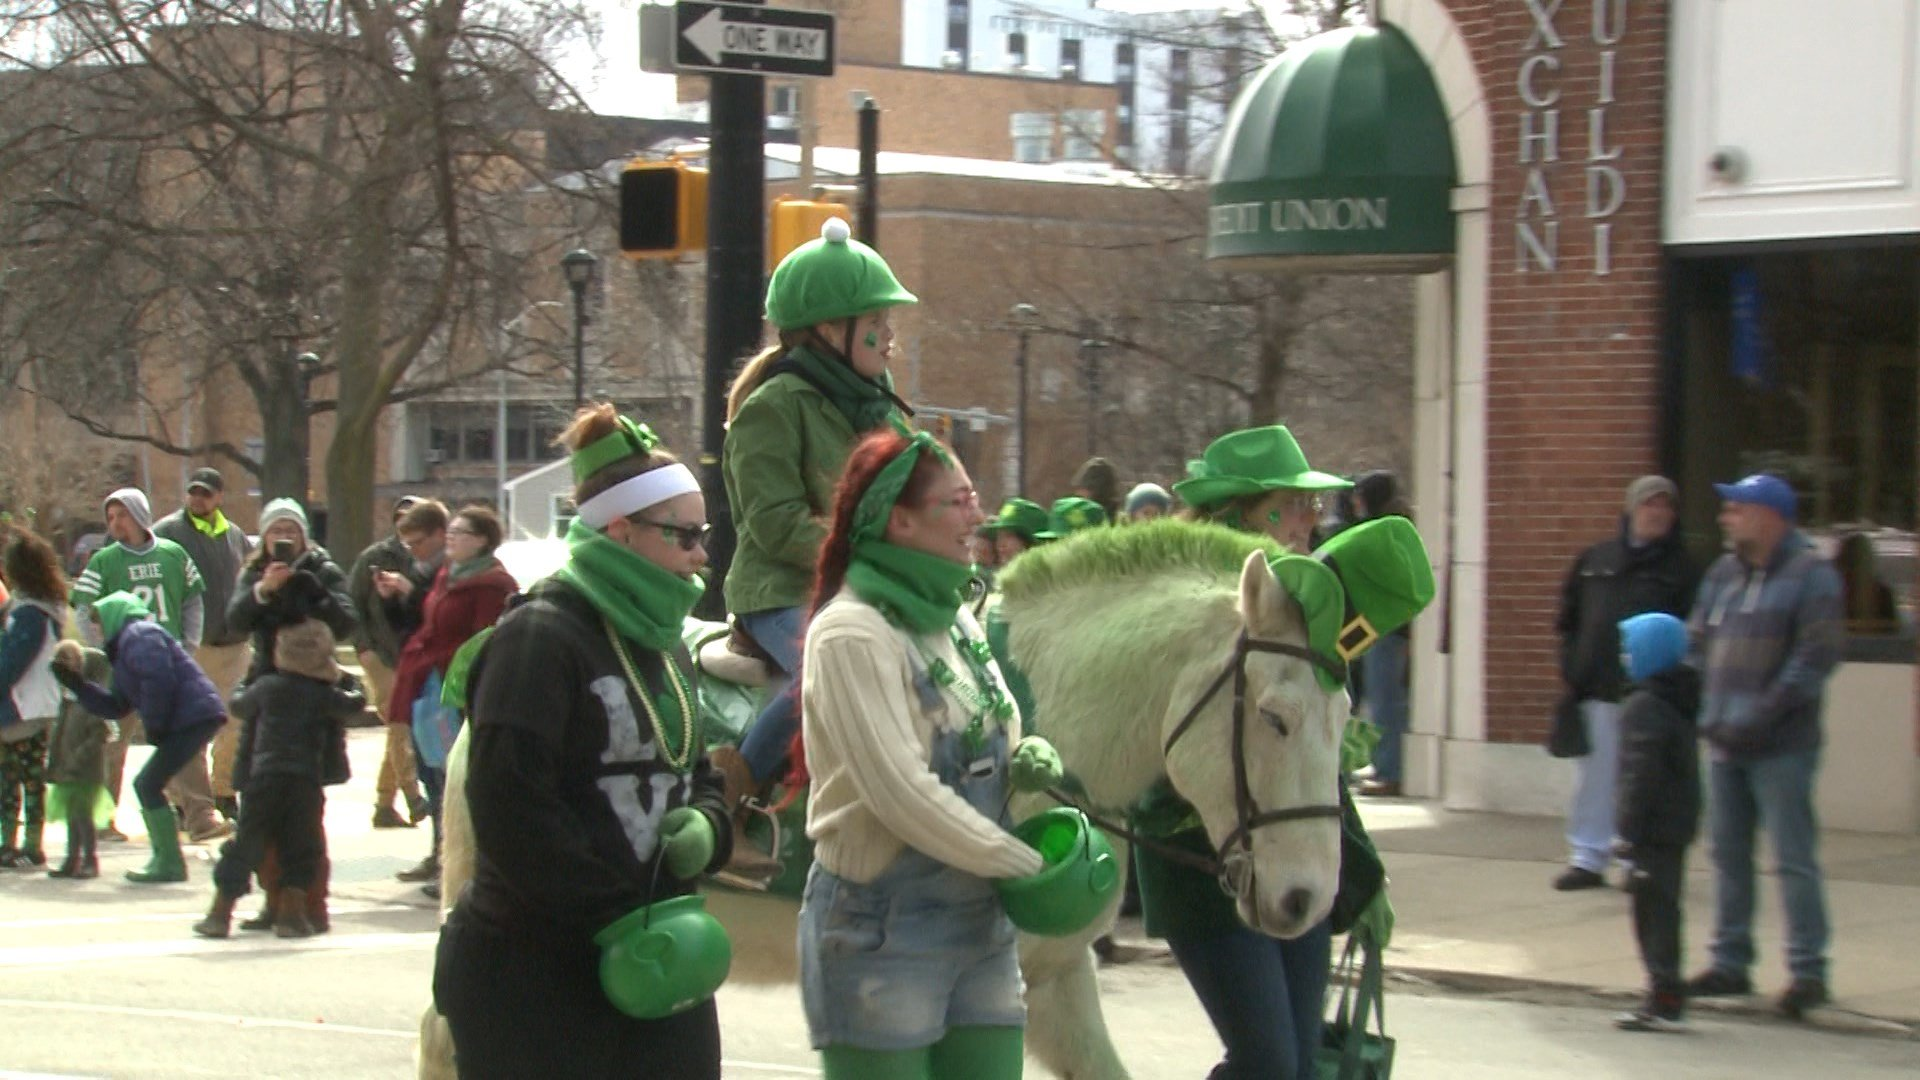 Erie Residents and Visitors Enjoy St. Patrick's Day Parade - Erie News Now | WICU and WSEE in Erie, PA